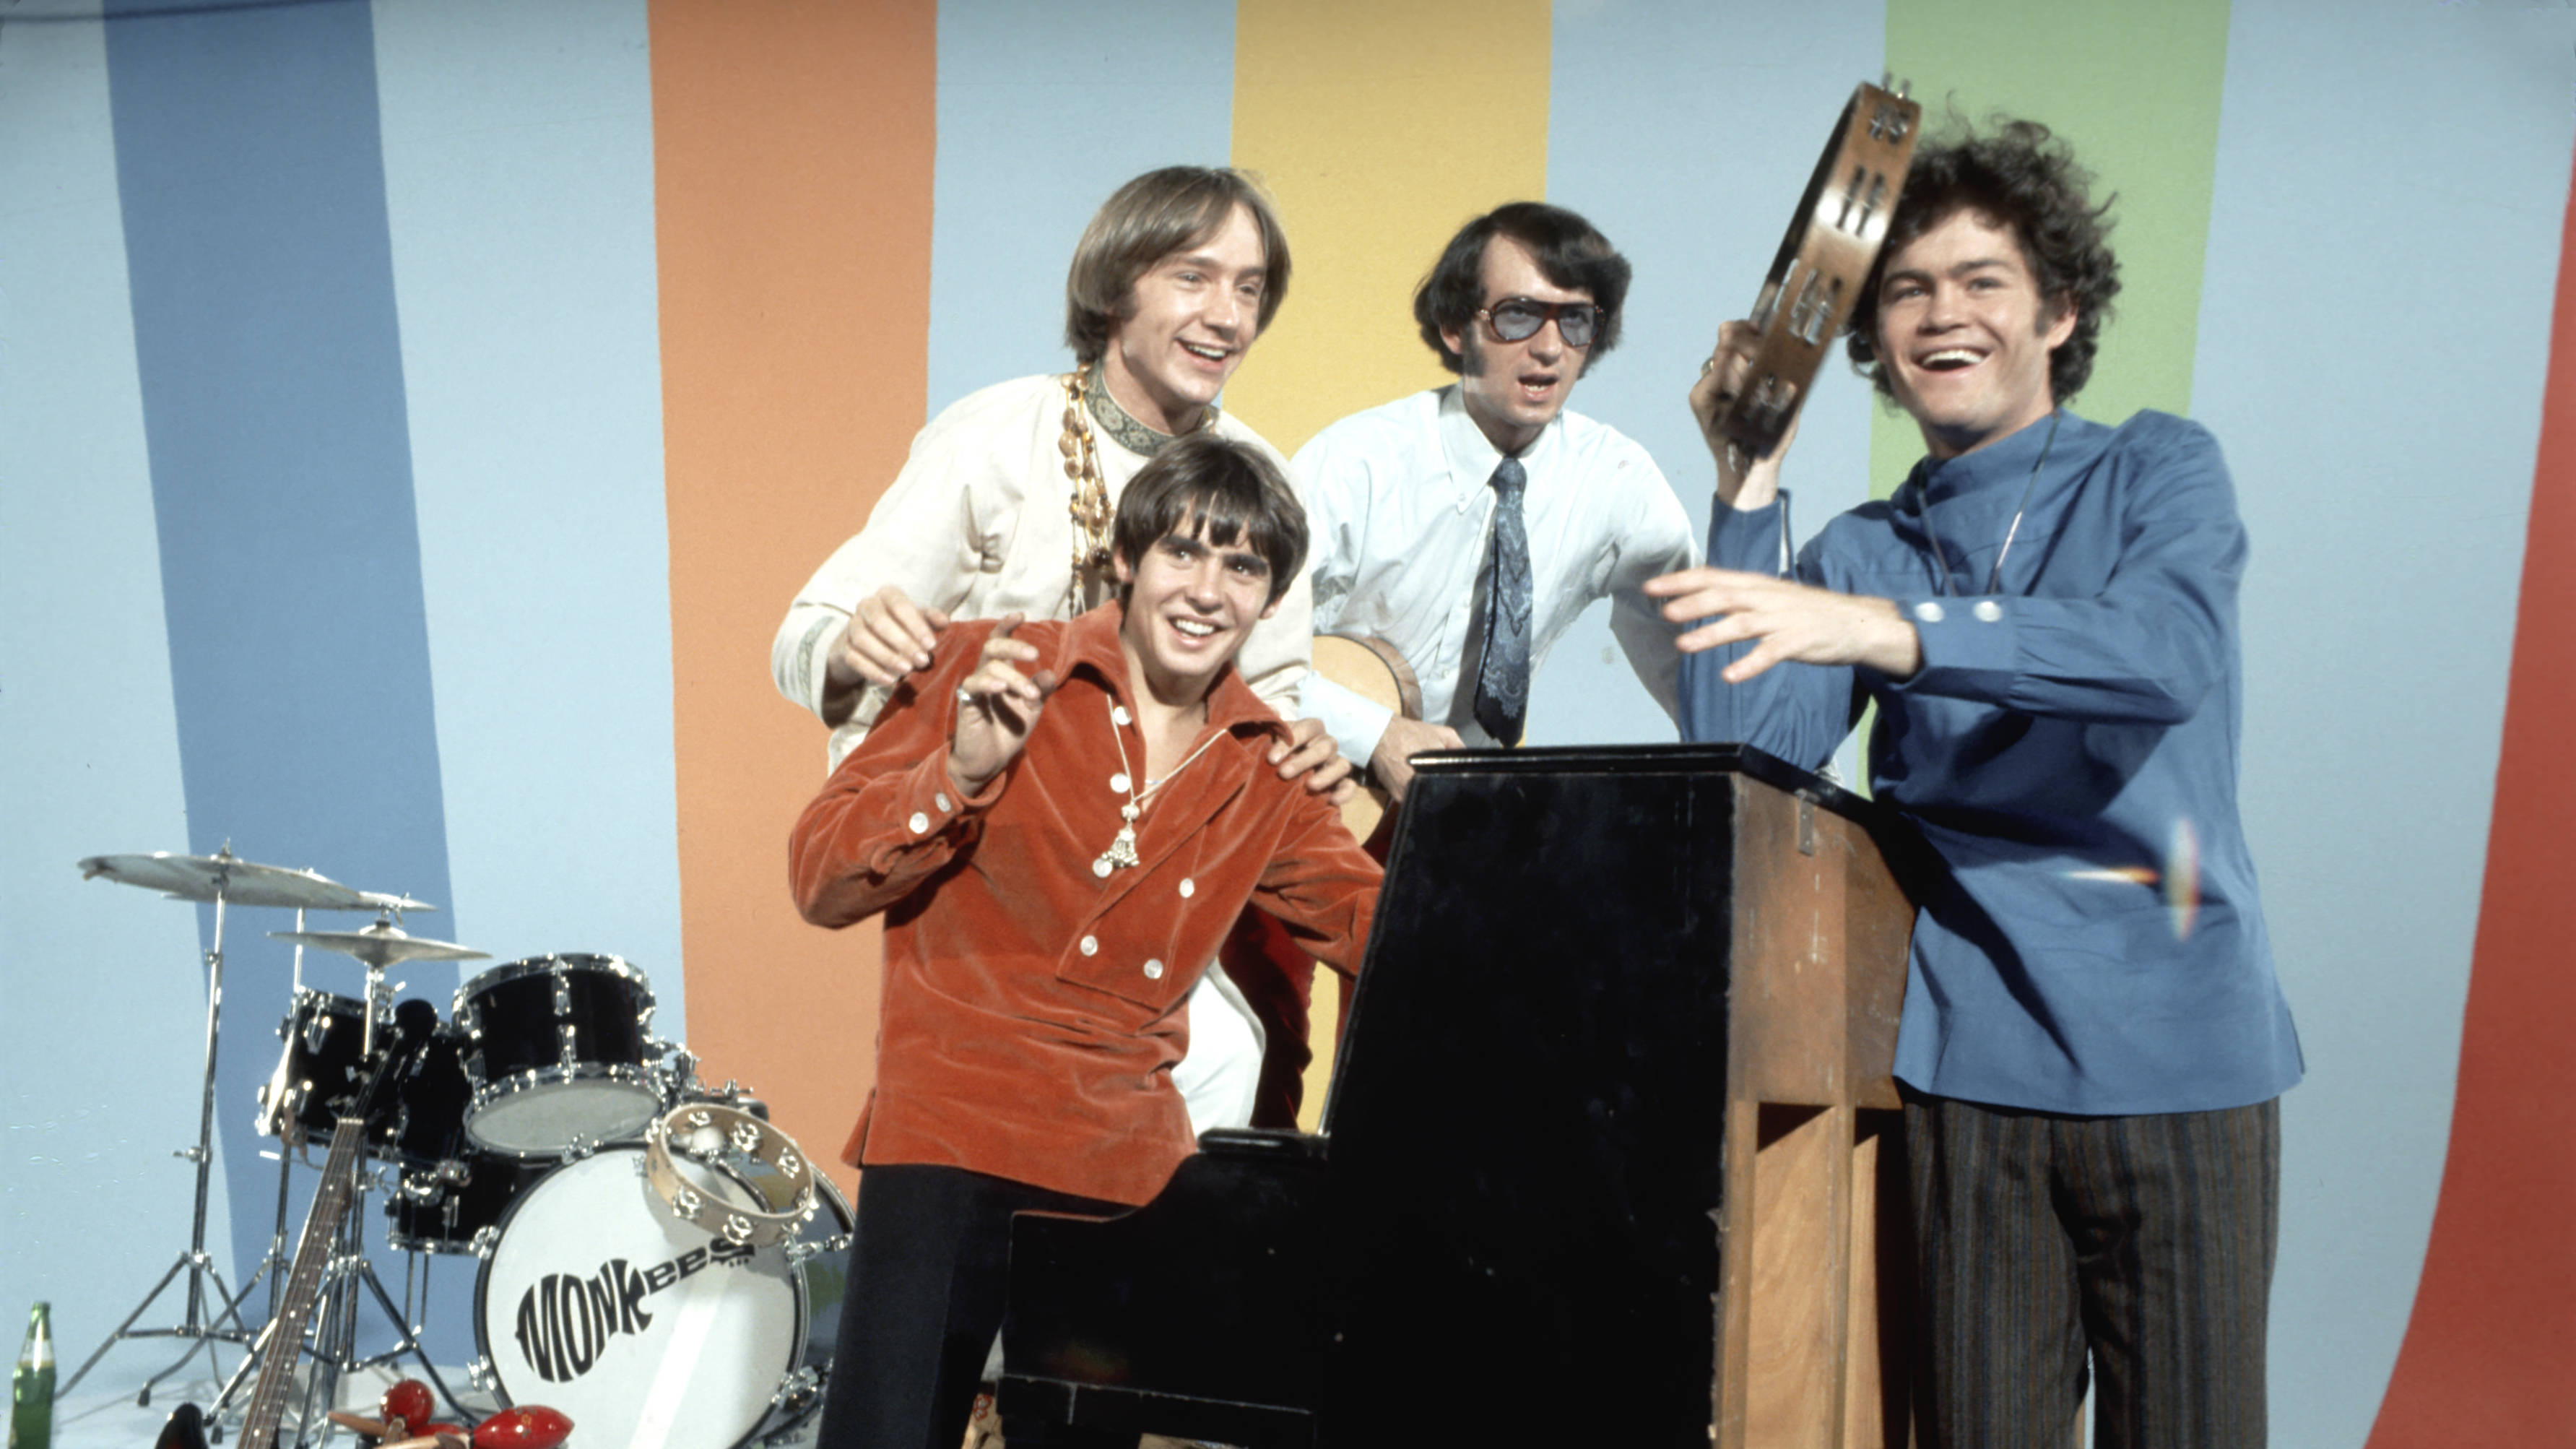 6 of the best Monkees songs ever - Smooth